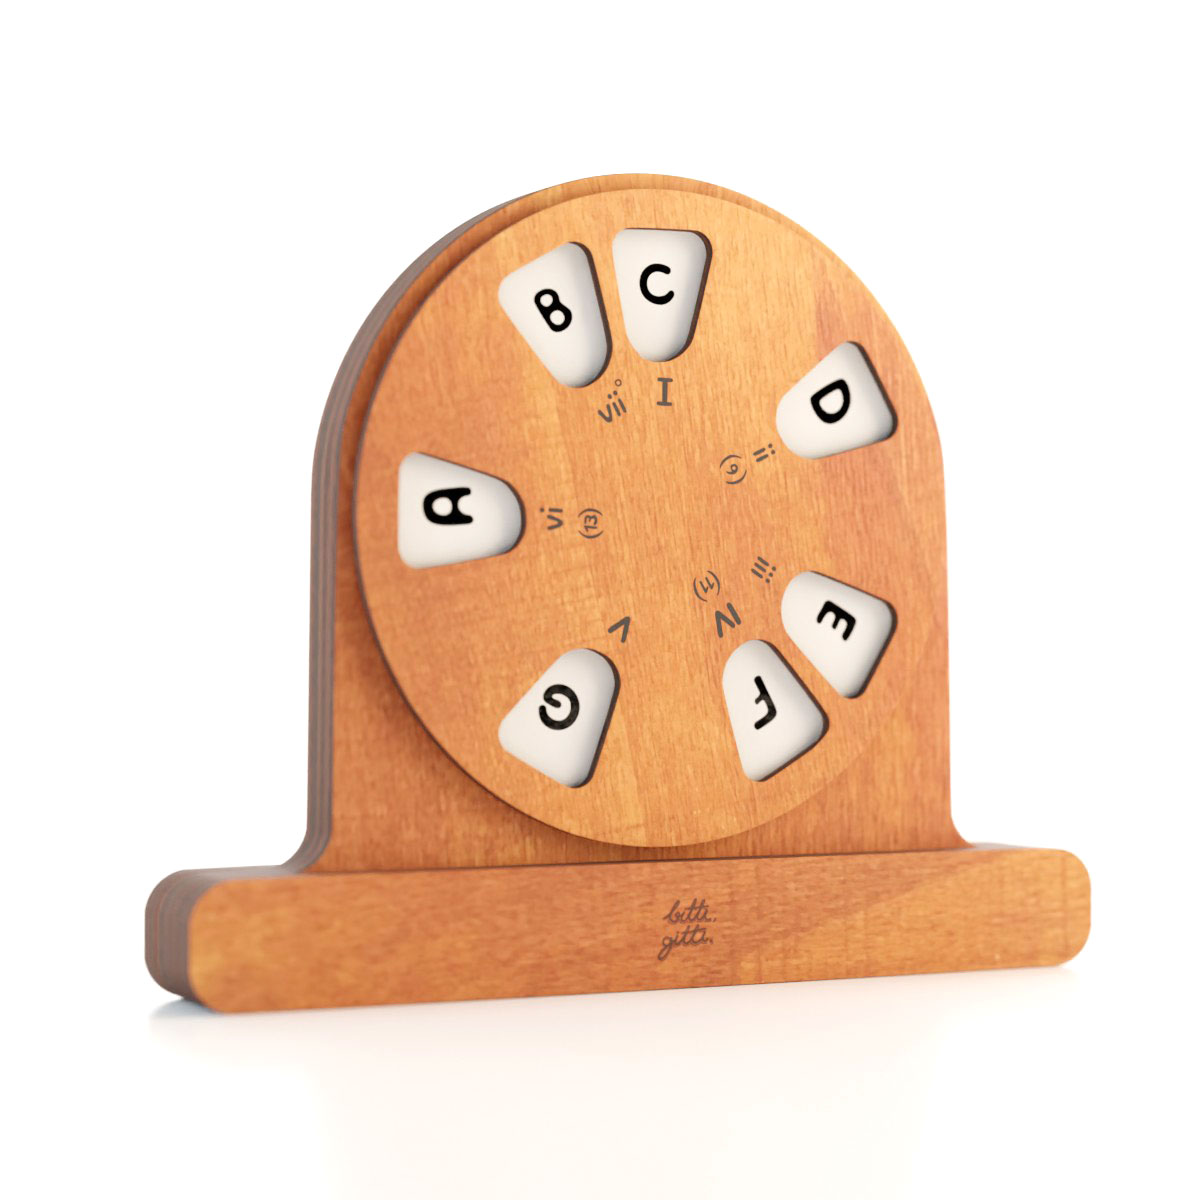 the Wooden Musical Wheel